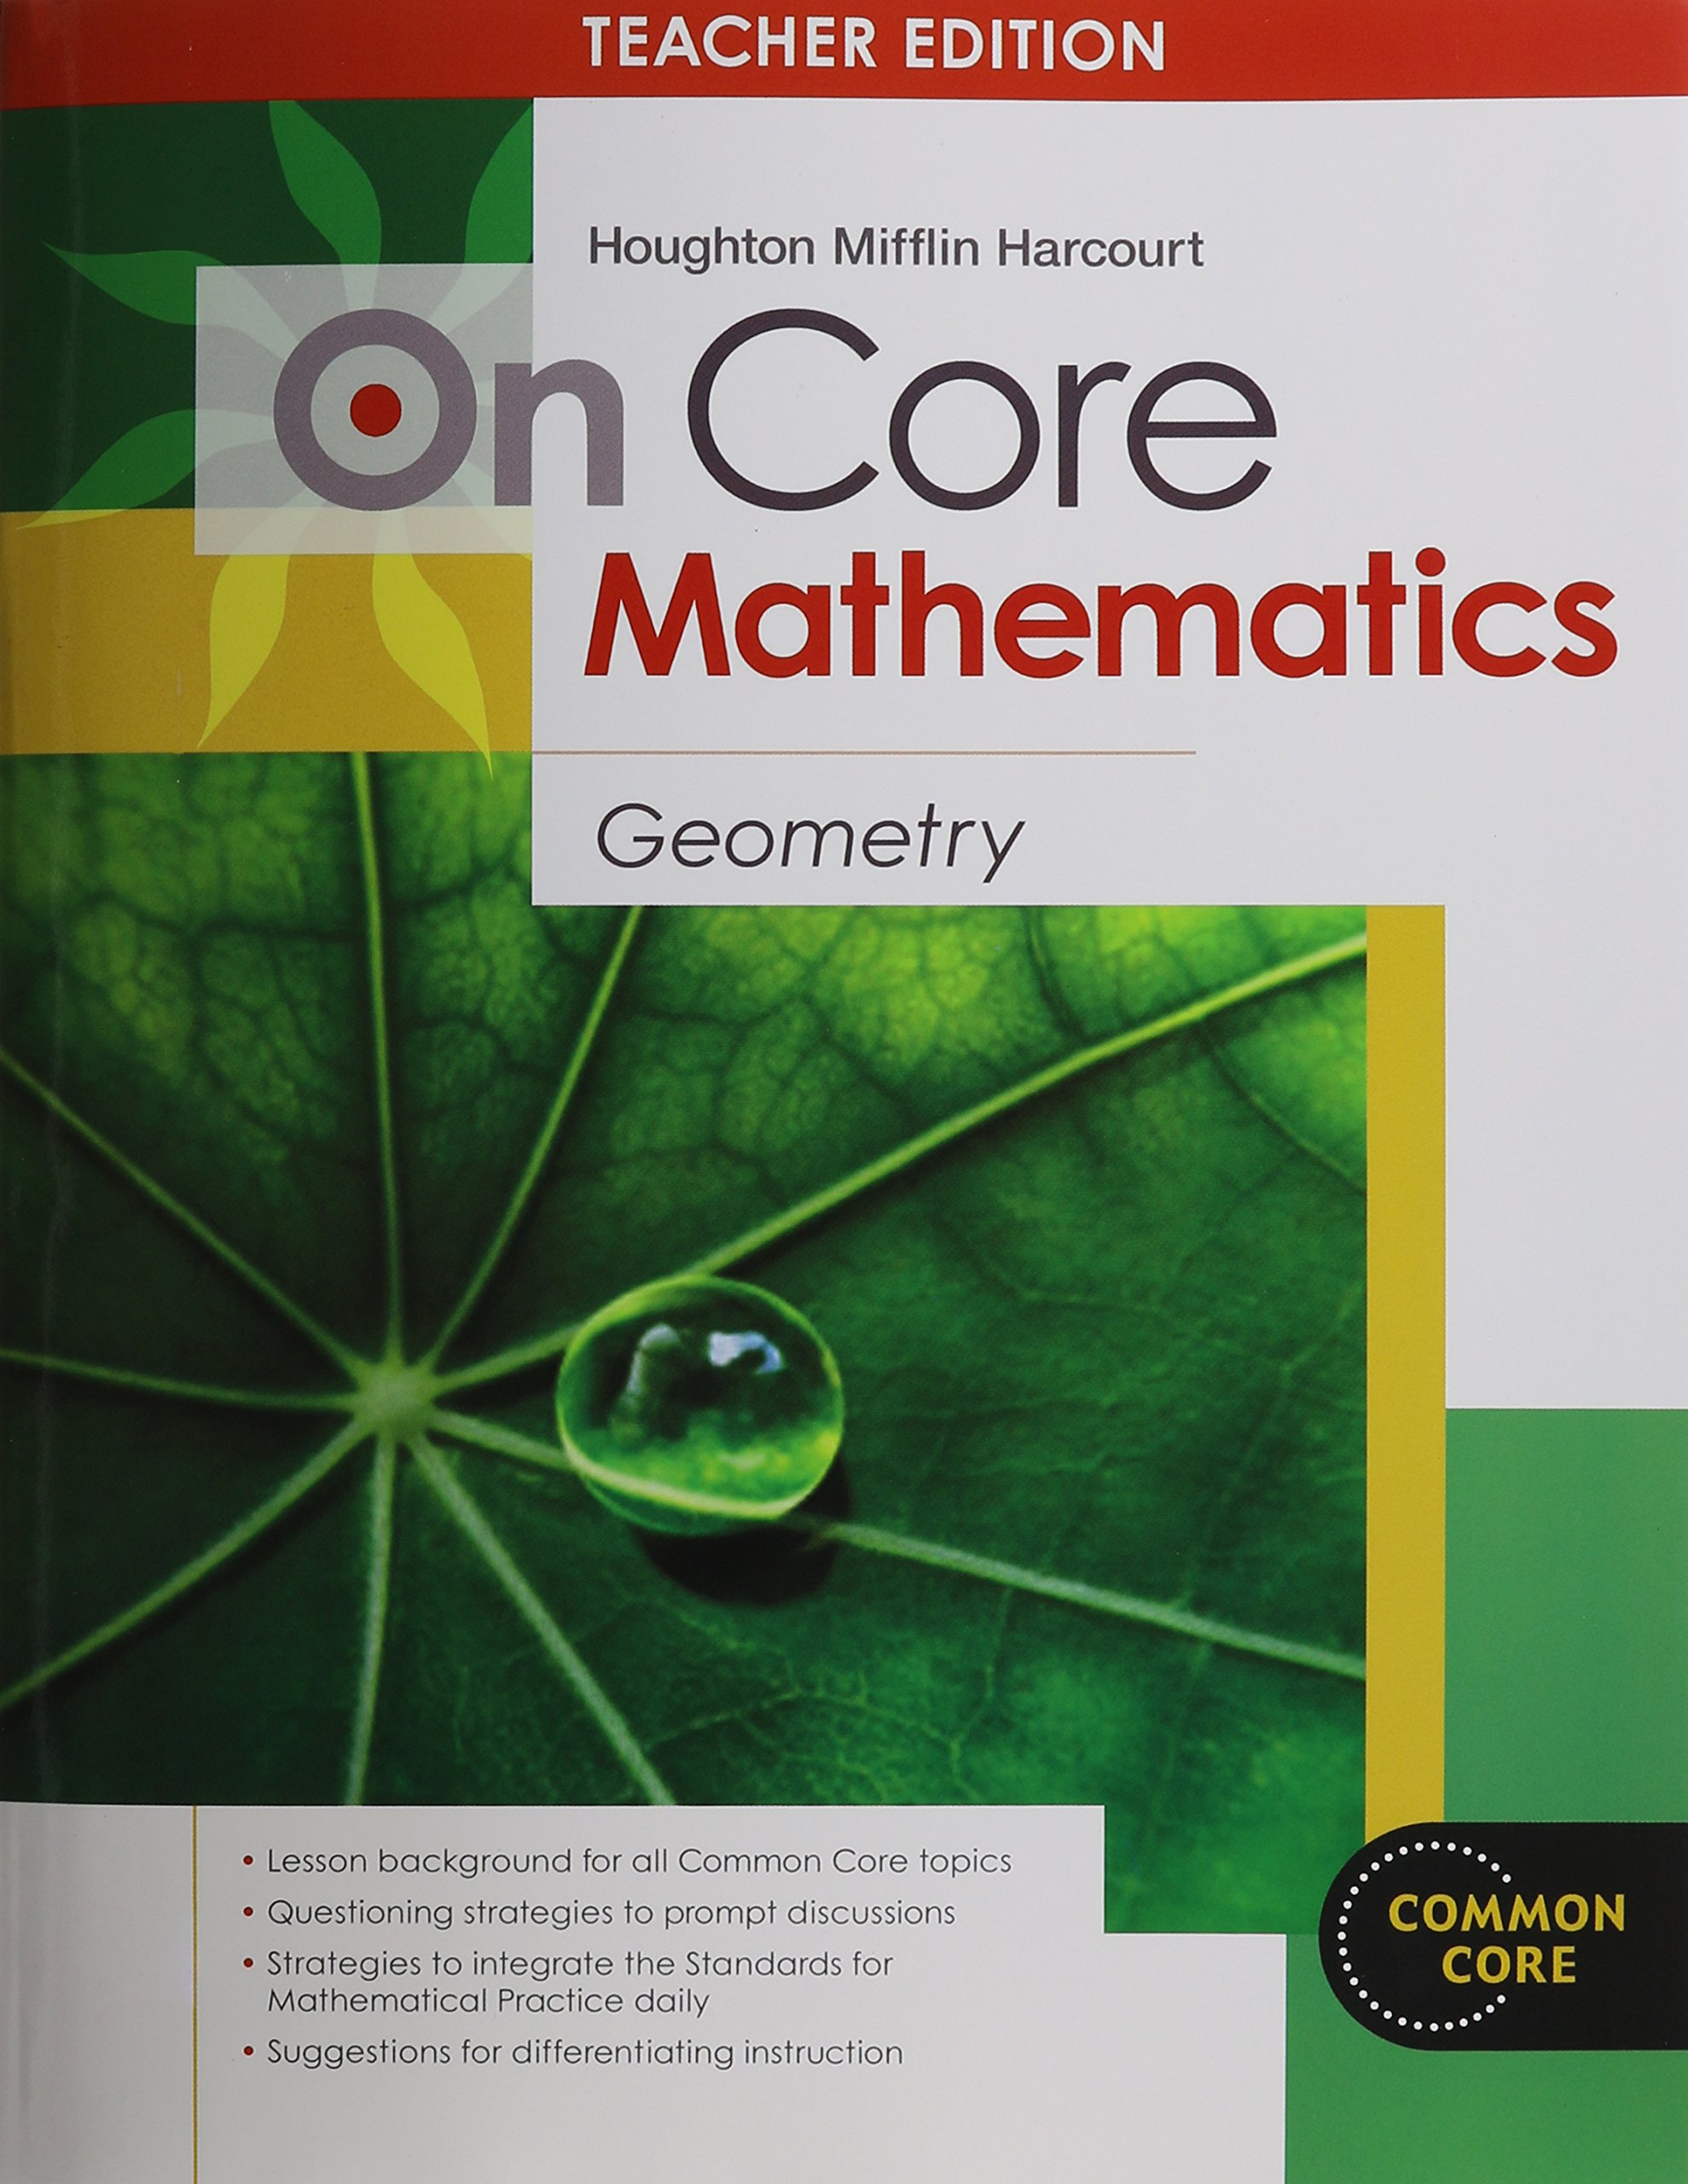 Houghton mifflin harcourt on core mathematics teachers guide houghton mifflin harcourt on core mathematics teachers guide geometry 2012 hoghton mifflin harcourt publishers 9780547617244 amazon books ccuart